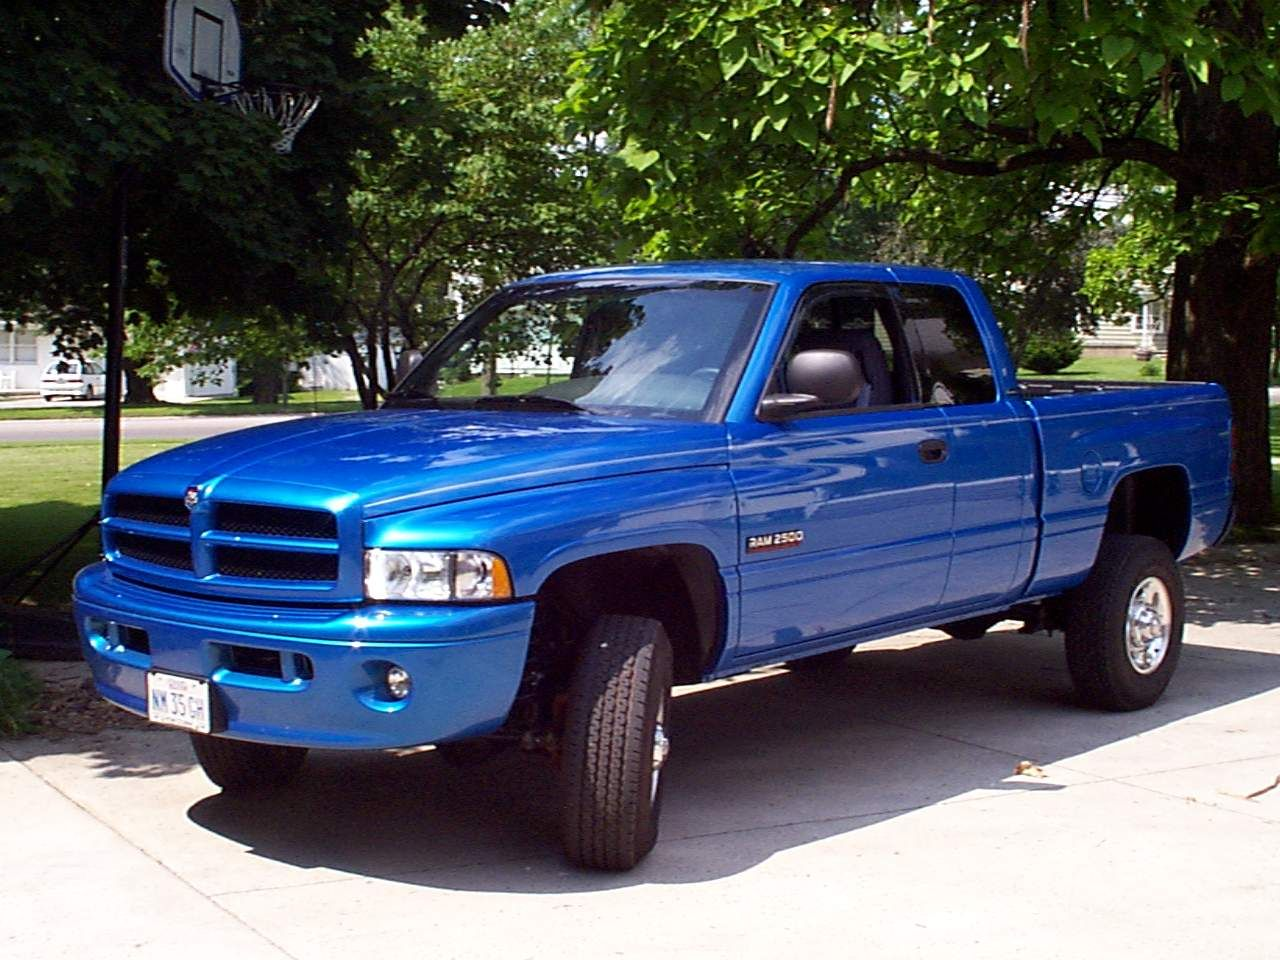 See all used dodge ram 2500 trucks for sale from local dealerships and private owners to find dodge trucks that fits your budget